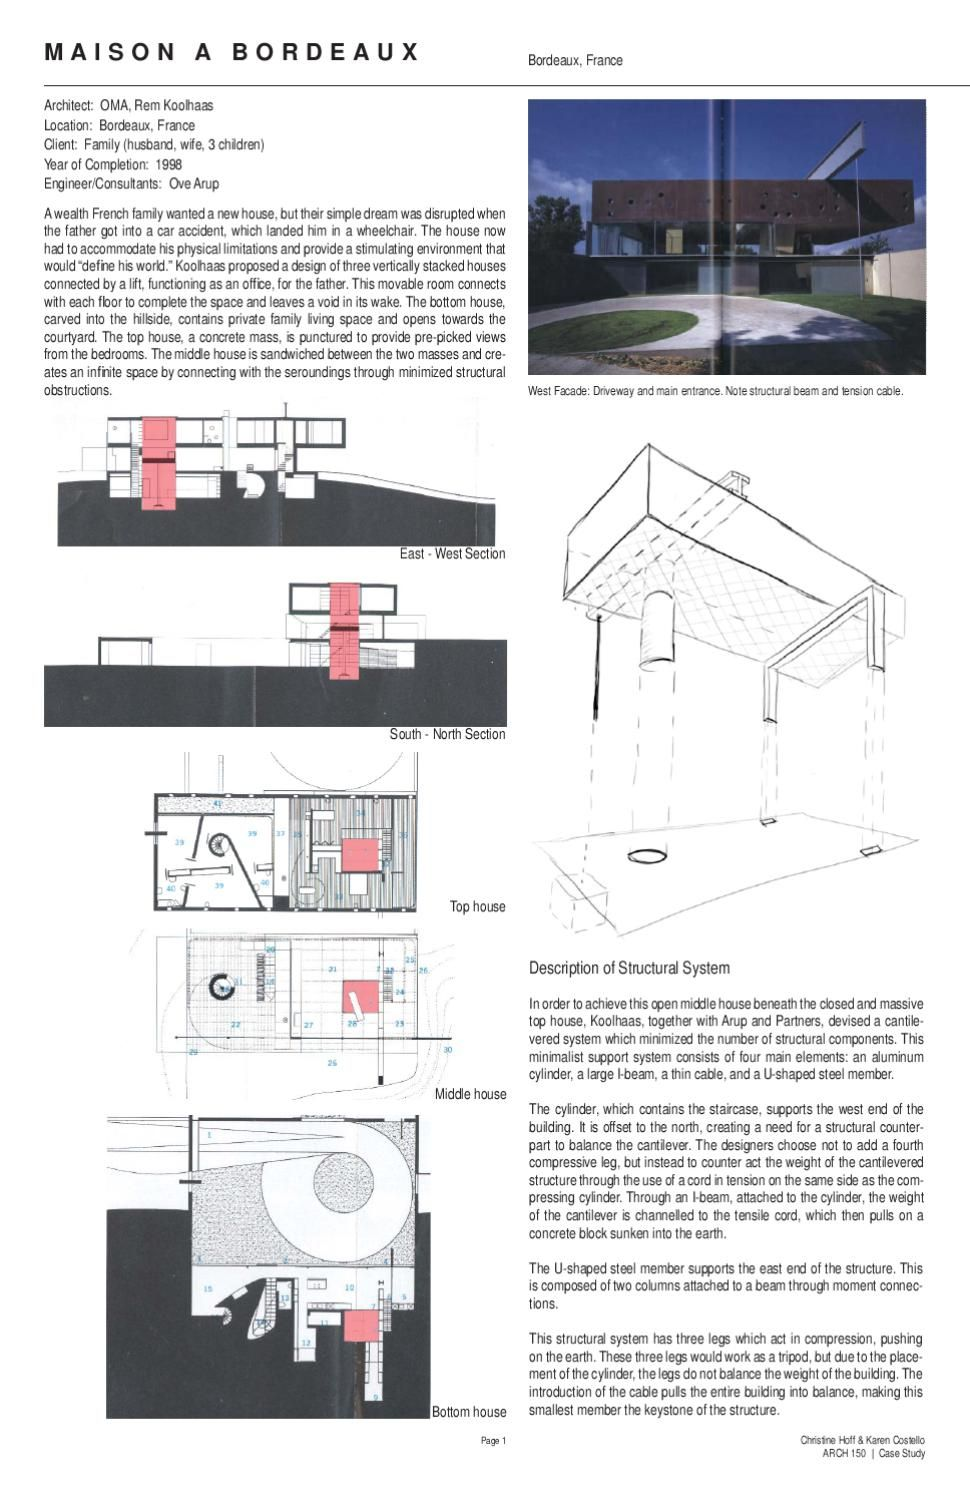 Case study maison a bordeaux rem koolhaas and architecture - Maison de l architecture bordeaux ...